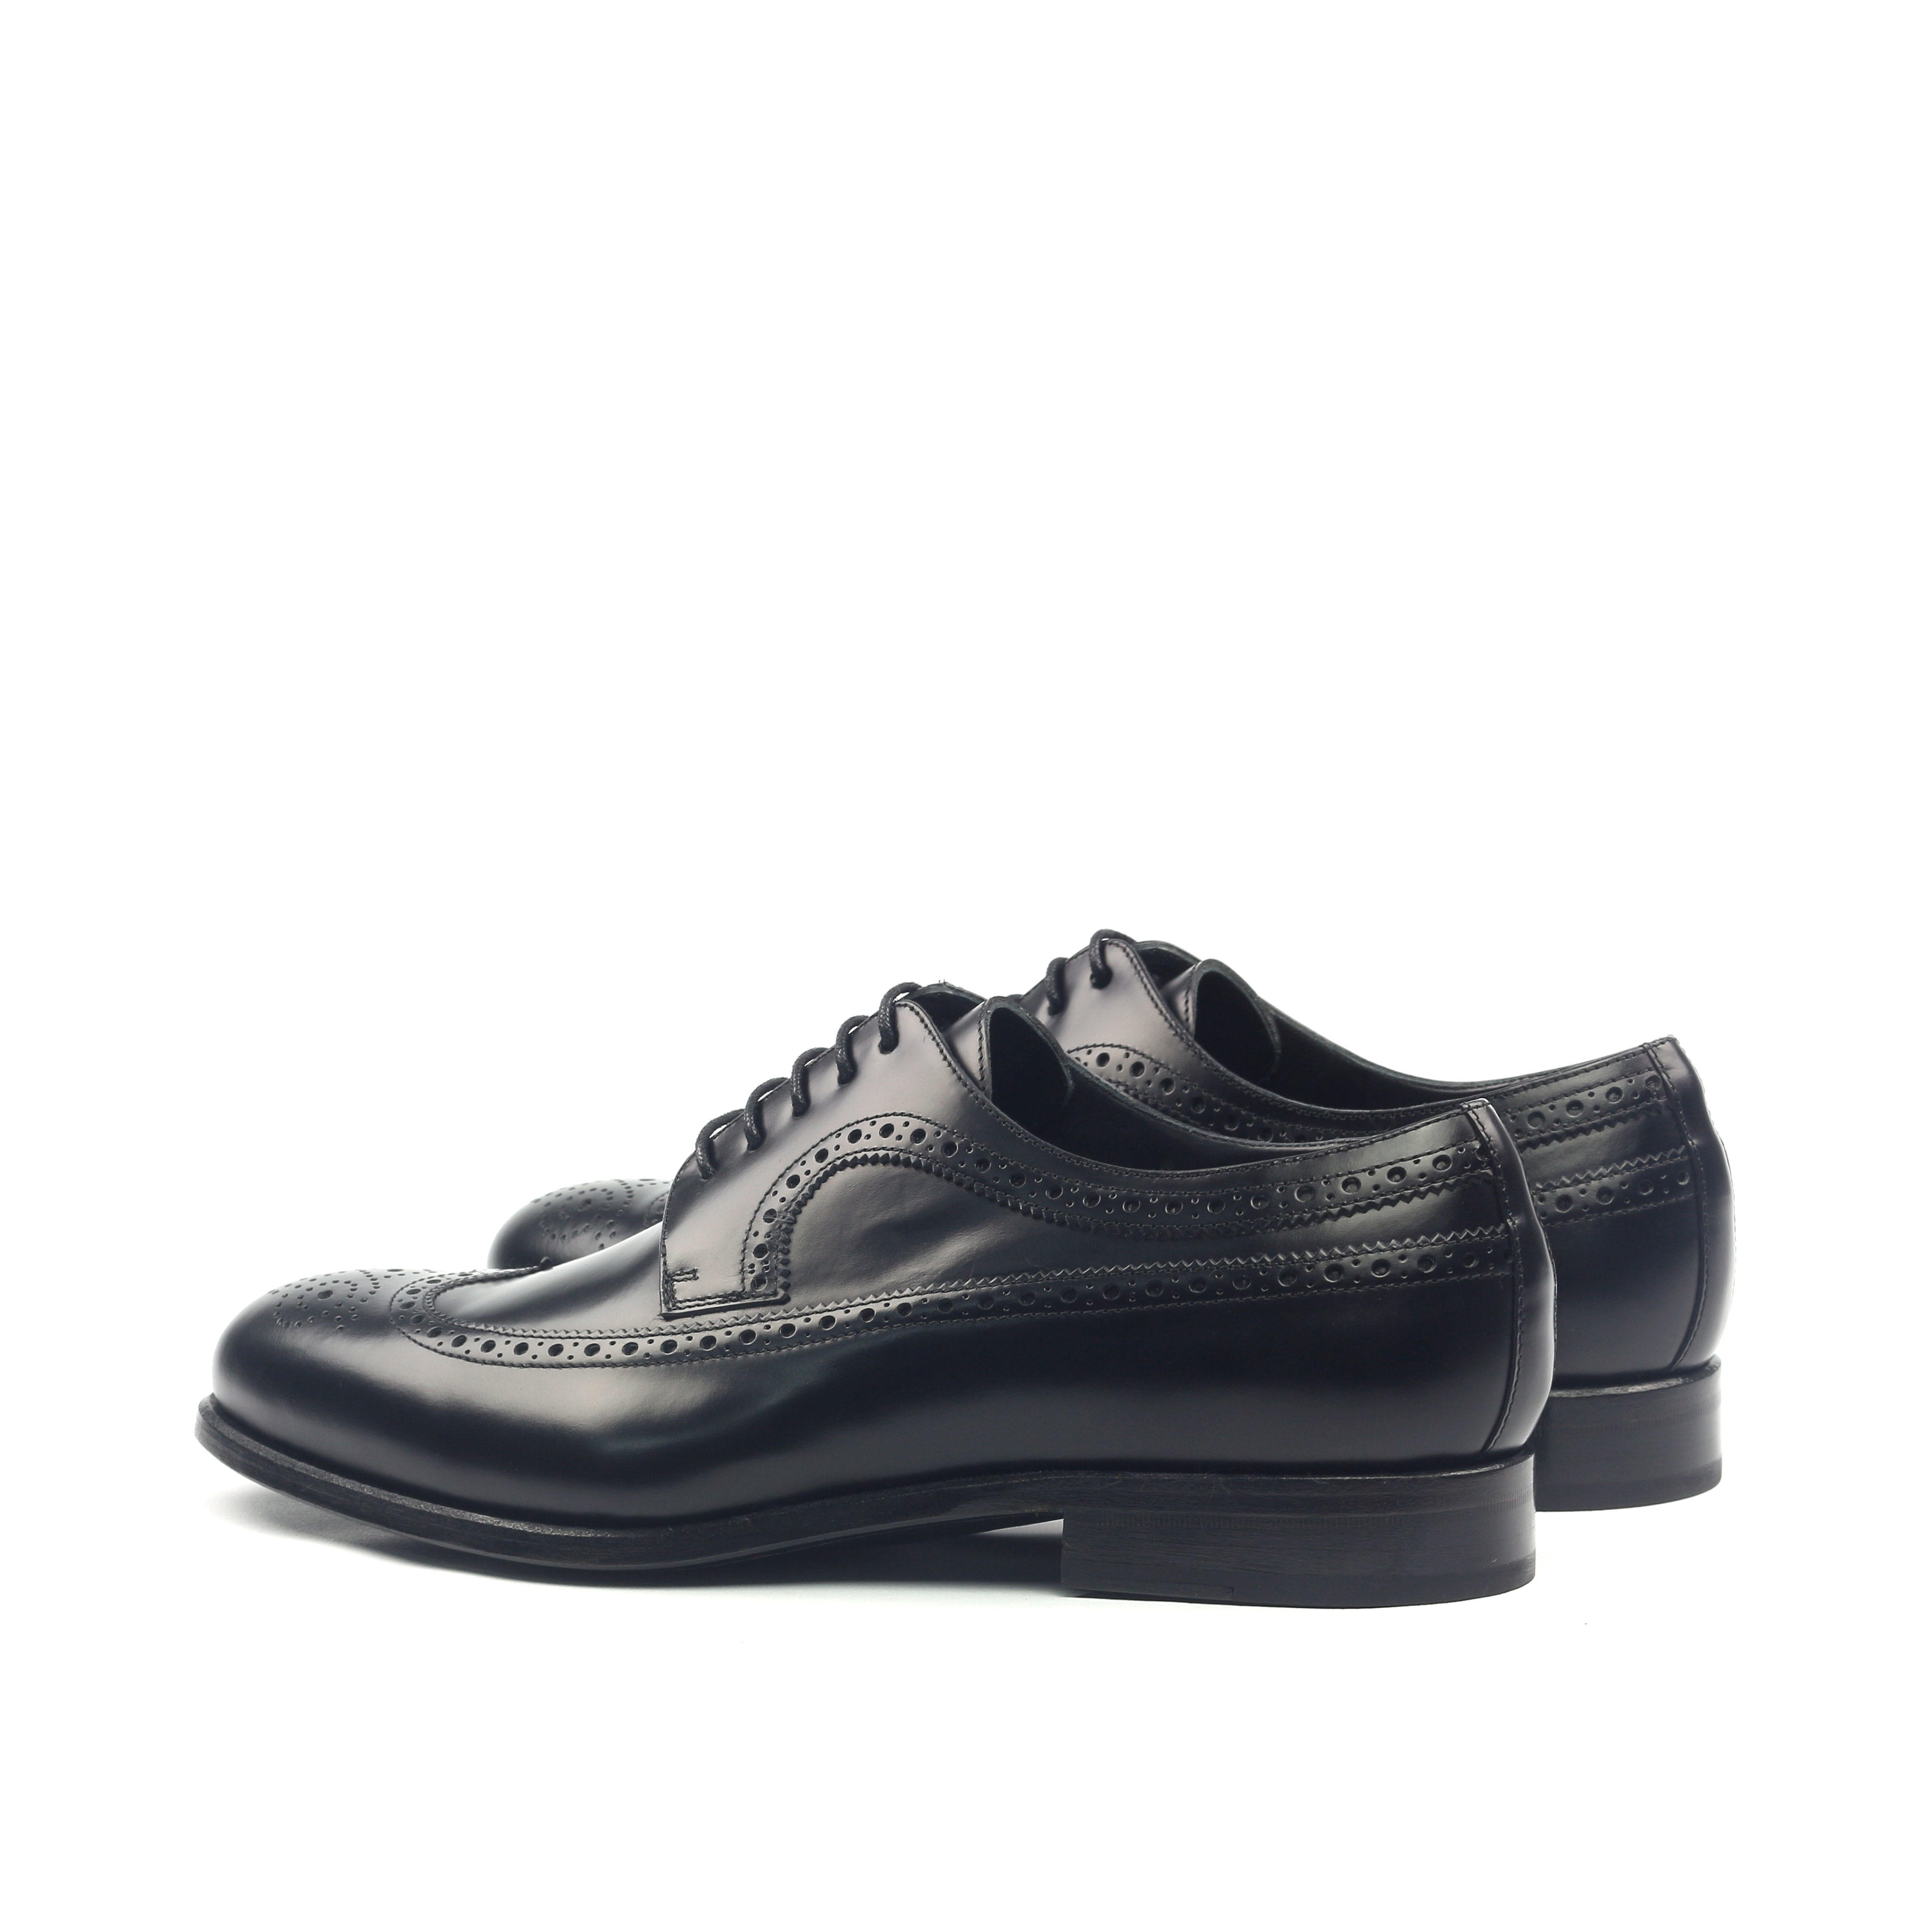 'The Blucher' Black Polished Calfskin Shoe Mens Luxury Back Side View